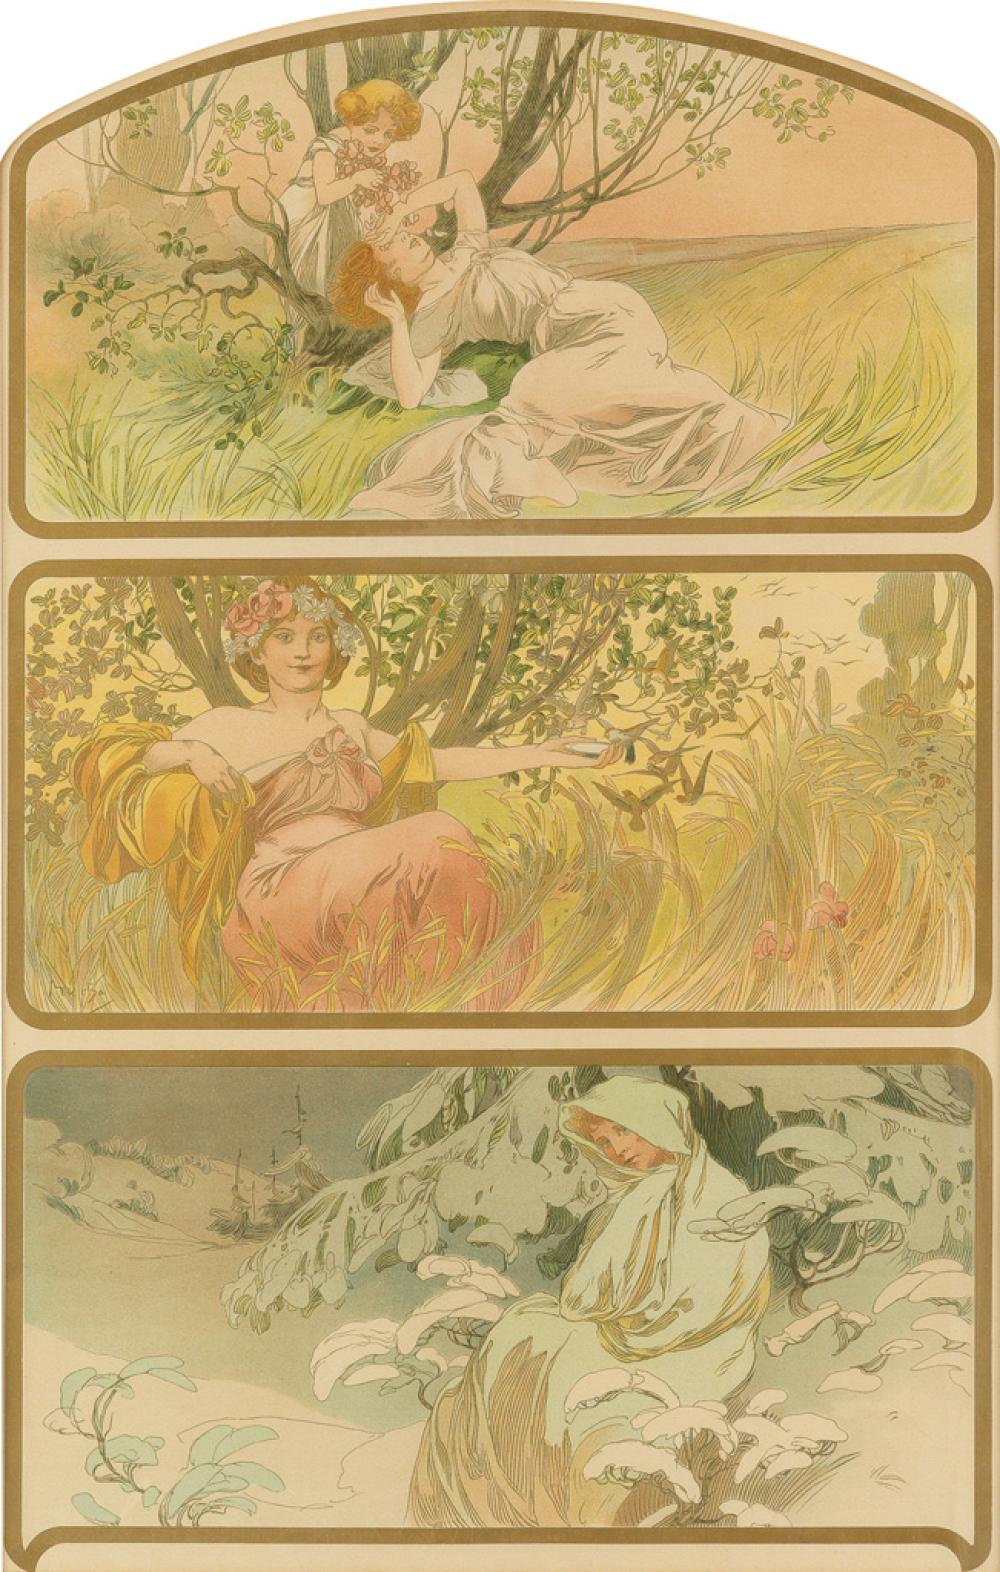 ALPHONSE MUCHA (1860-1939). [THREE SEASONS.] Circa 1898. 24x16 inches, 62x42 cm. [F. Champenois, Paris.]